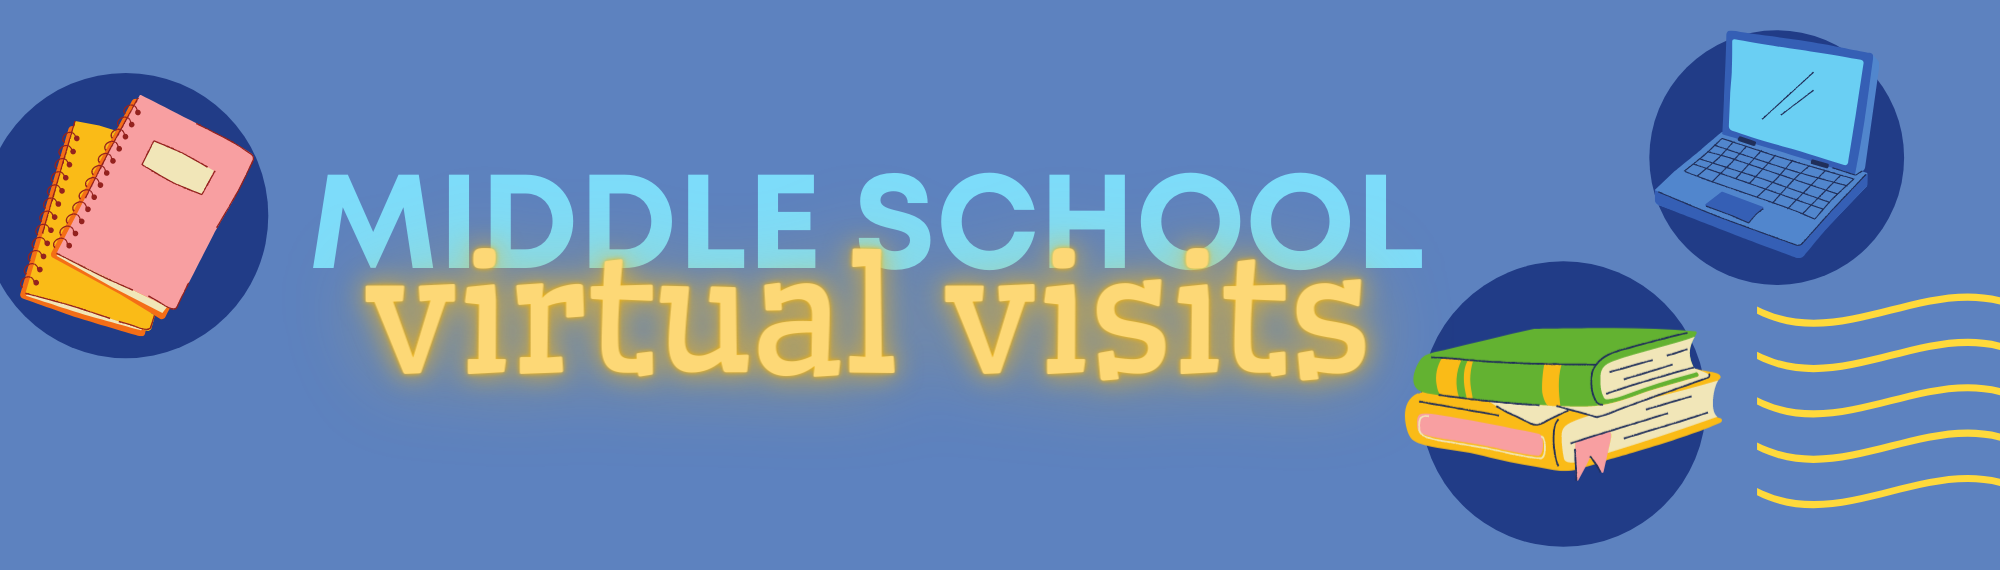 Middle School Visits